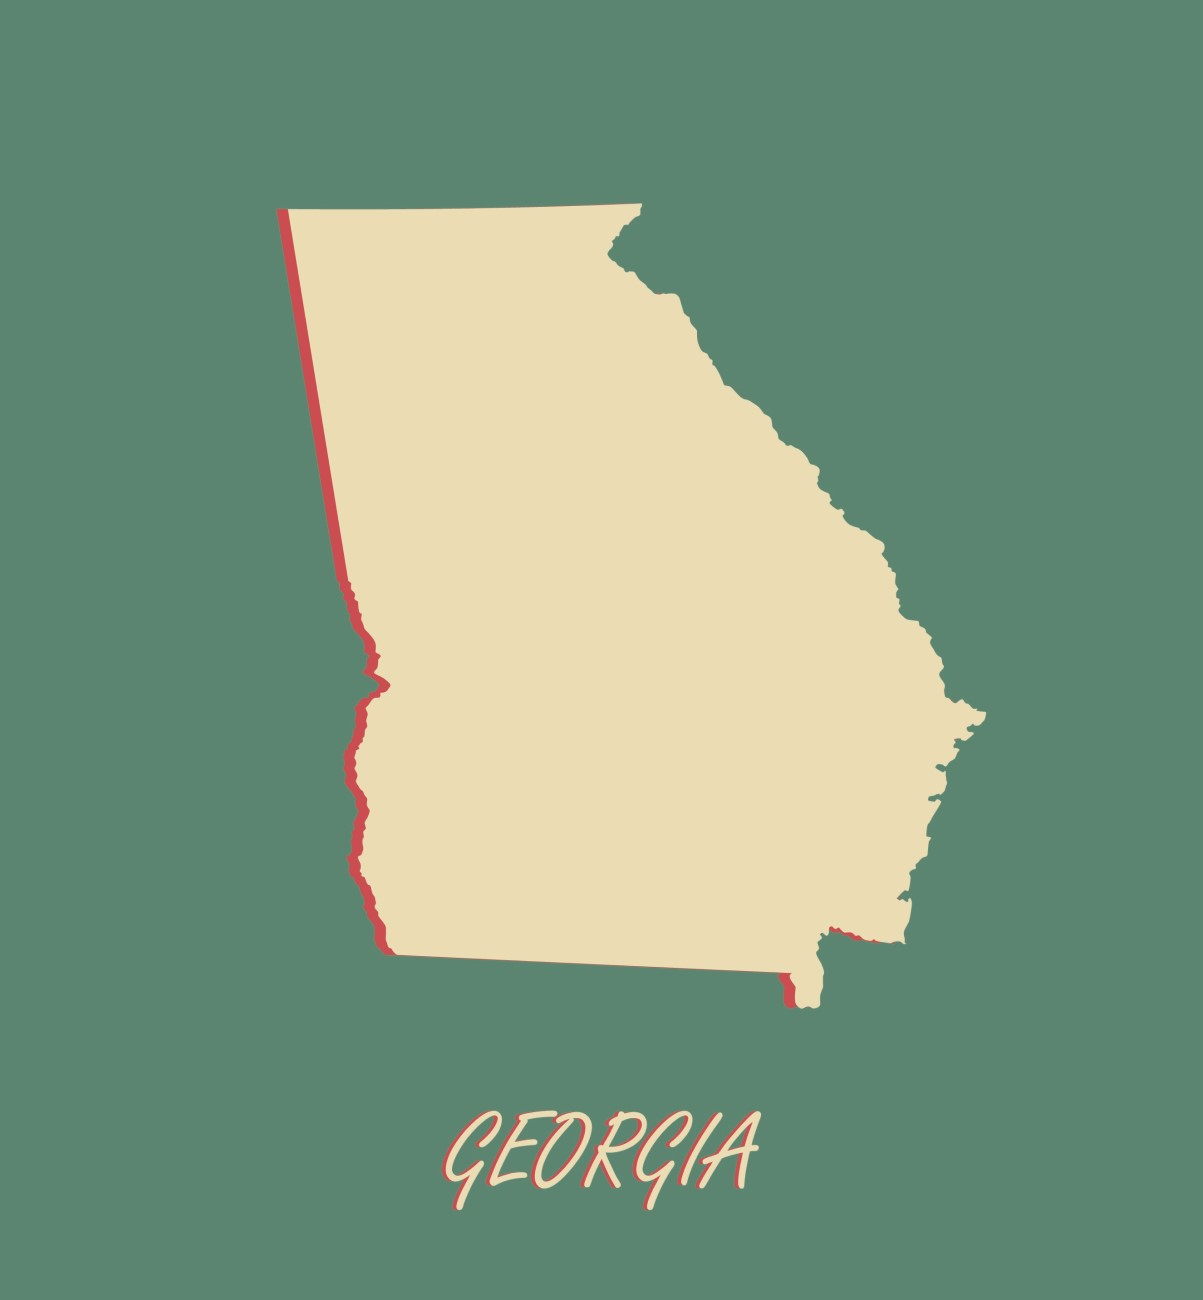 Nanny tax and payroll requirements for Georgia families